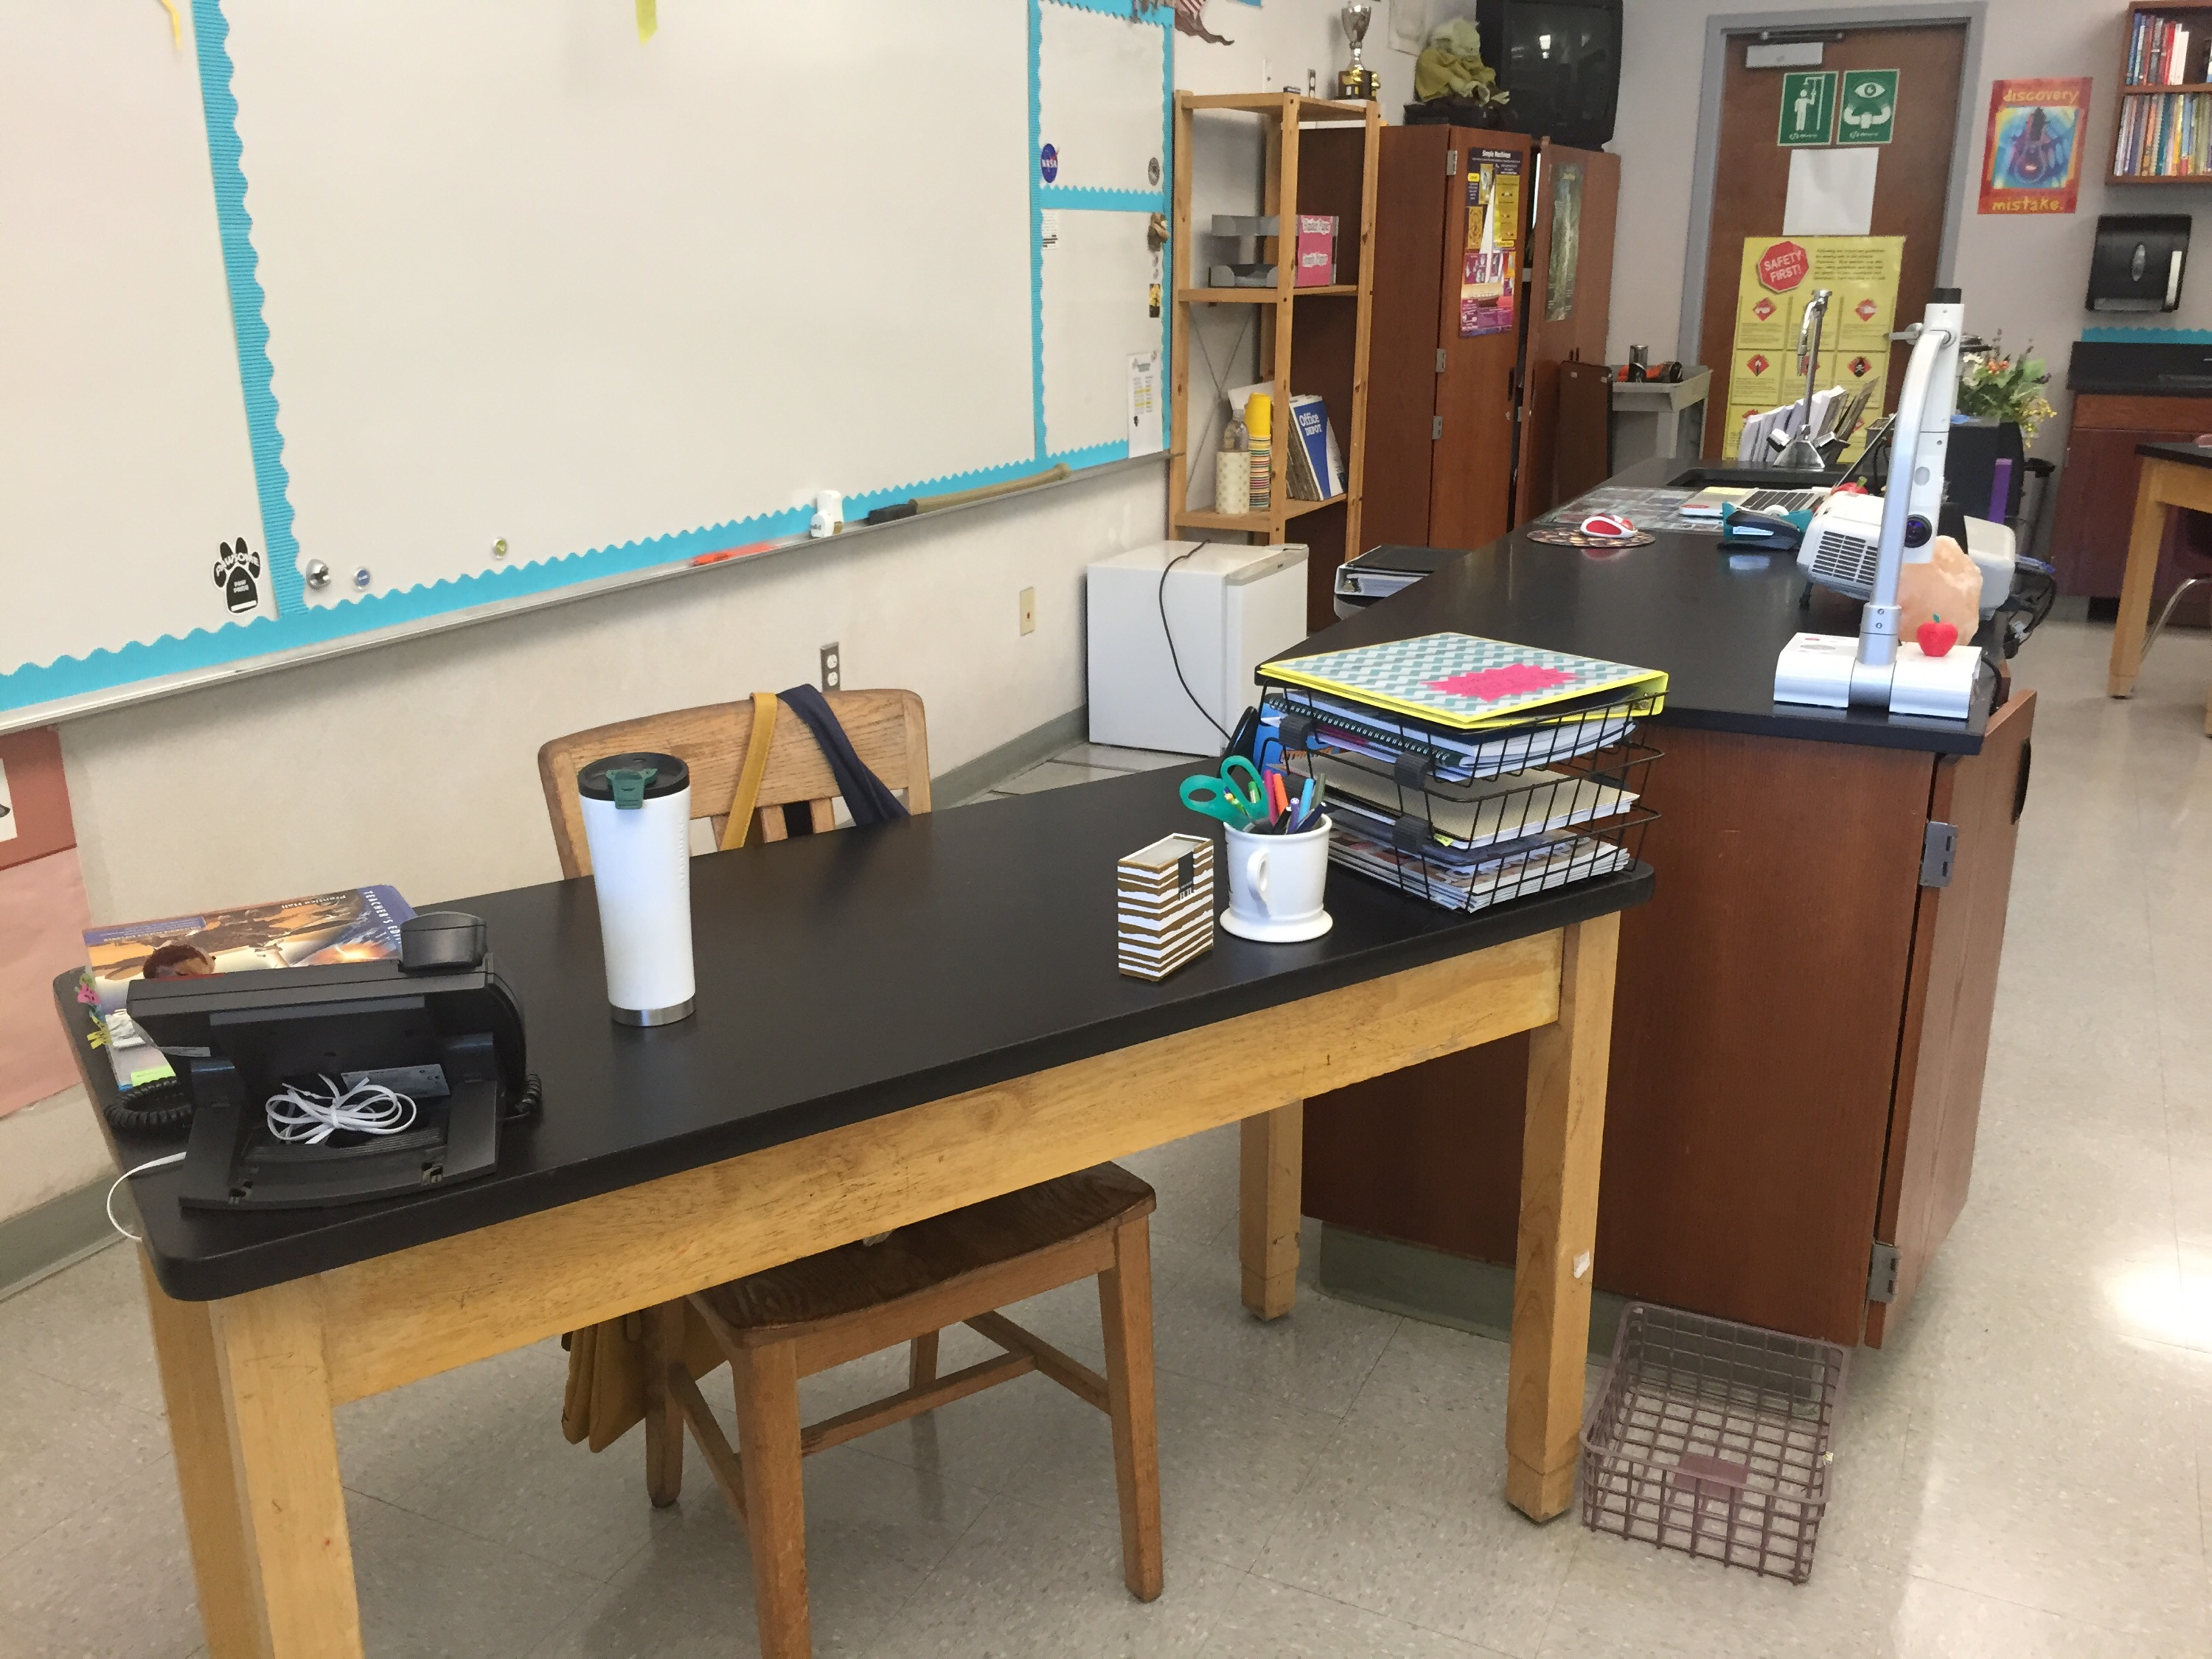 teacher img stuff desk grade of my a tuesday tour take decor august classroom